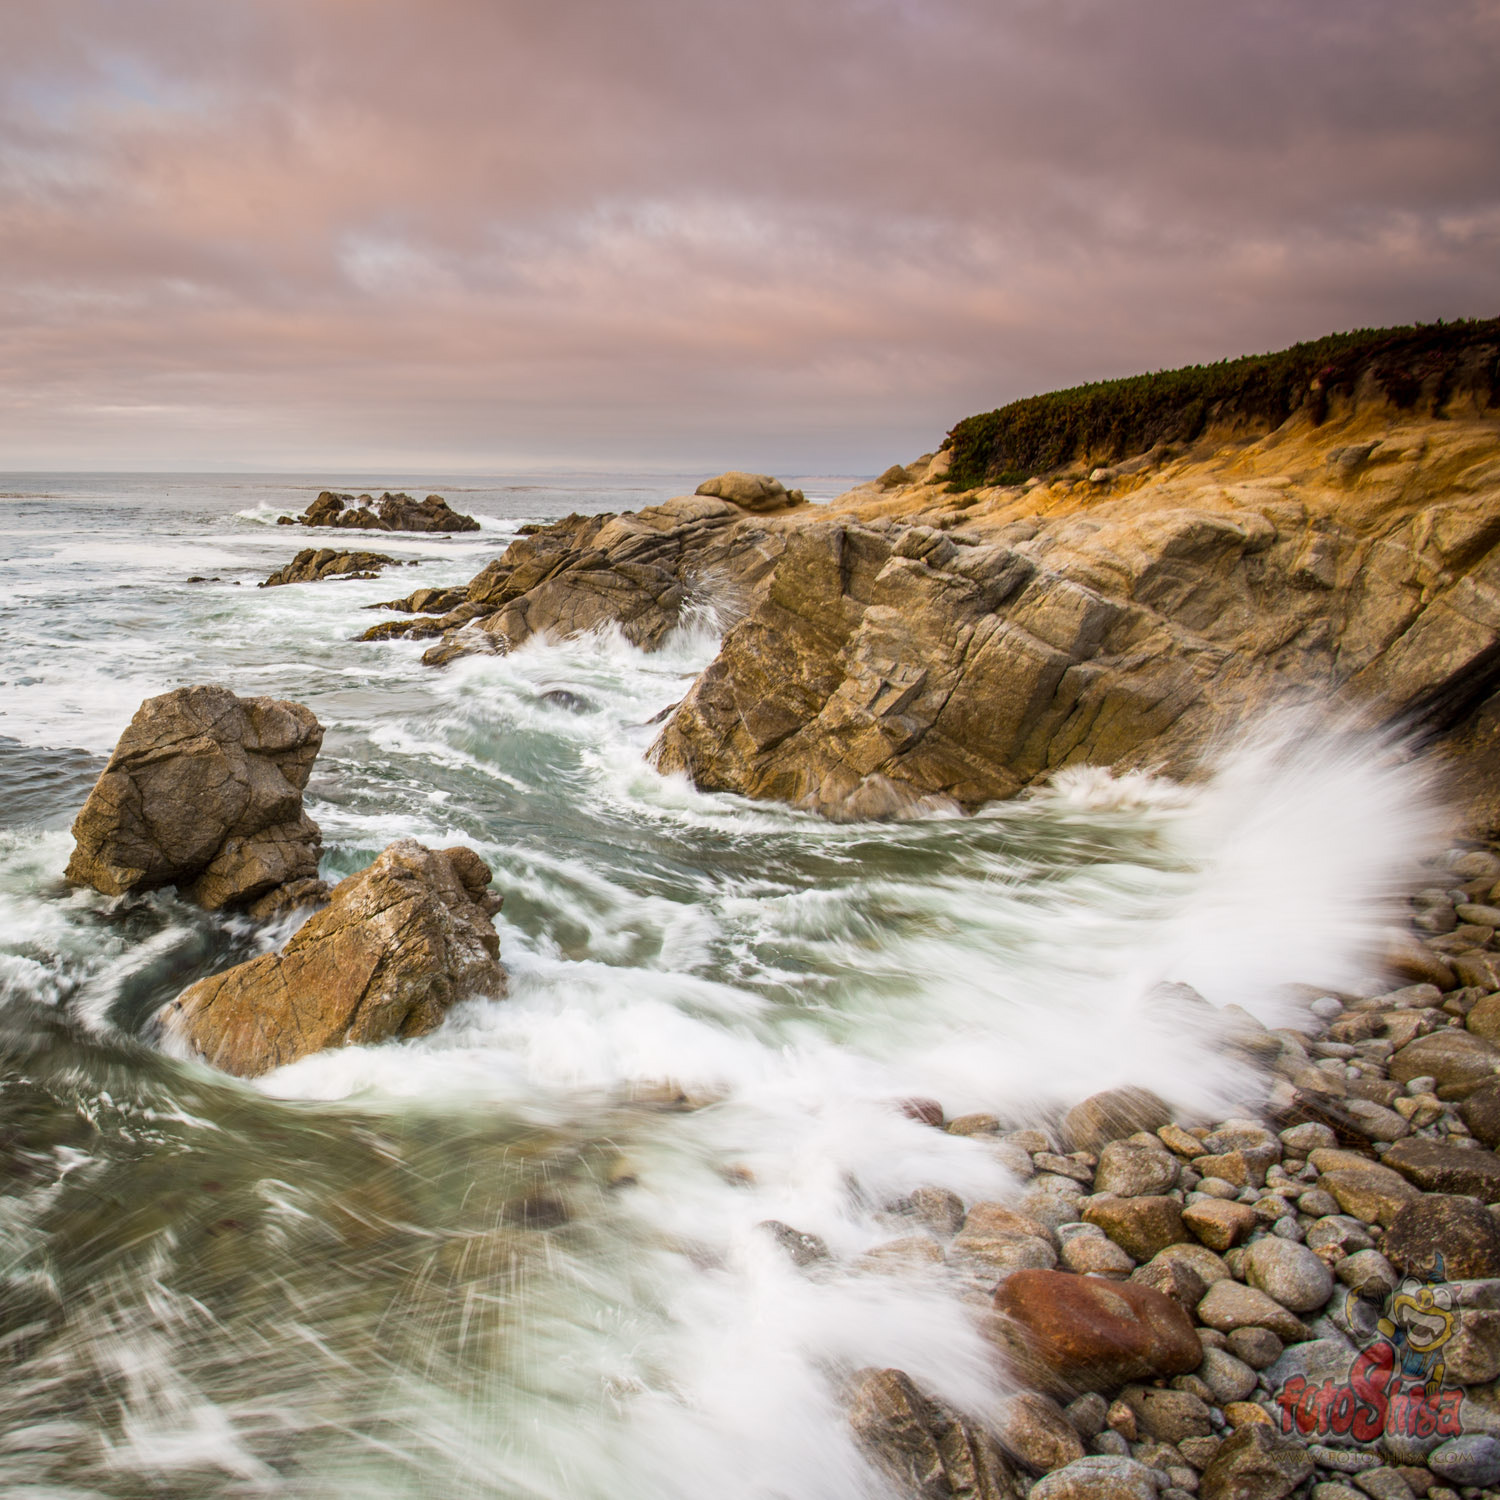 Photograph Monterey California coast line by Pete Leong on 500px